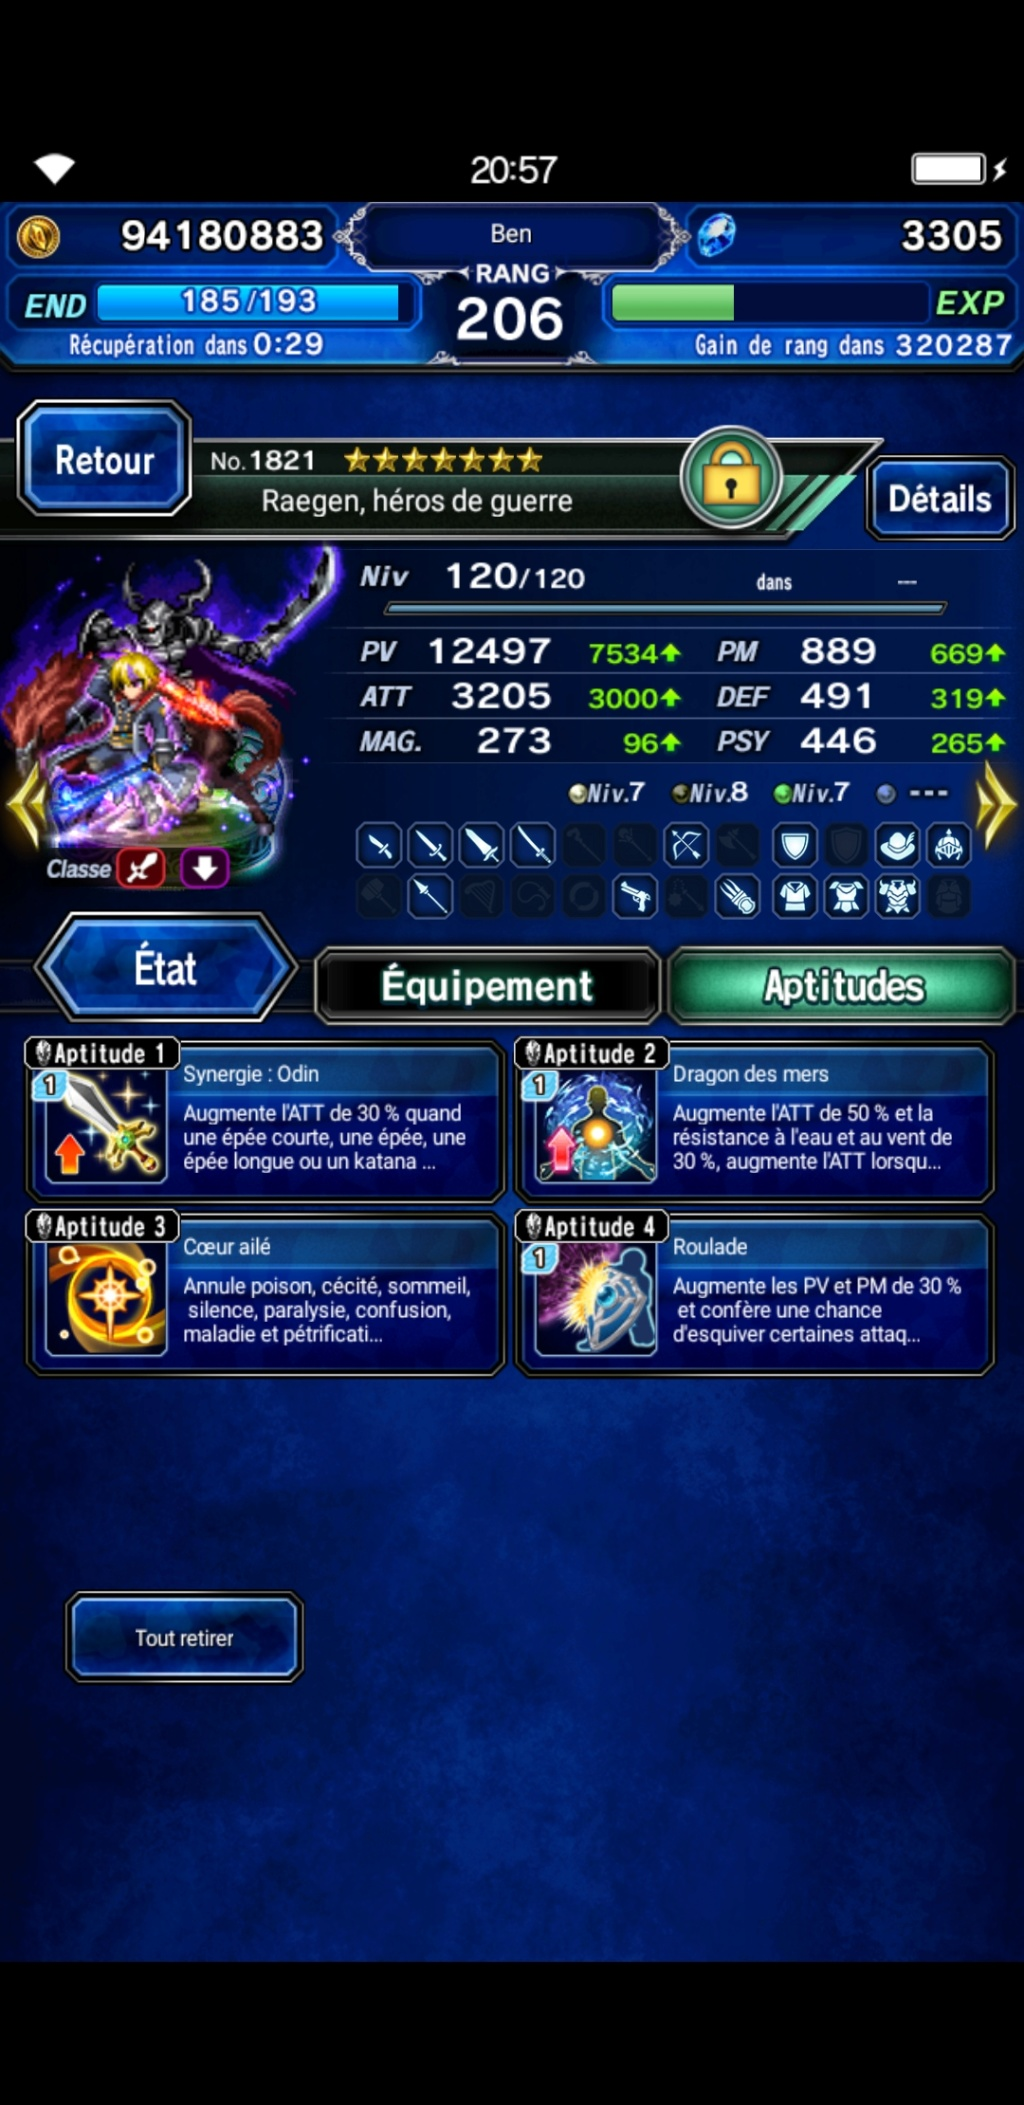 Invocations du moment, boutique d'échange, tickets 5★ garantie et tickets d'échange - FFBE (WHRaegen/FWPhysalis) - du 21/05 au 04/06/20 Scree169